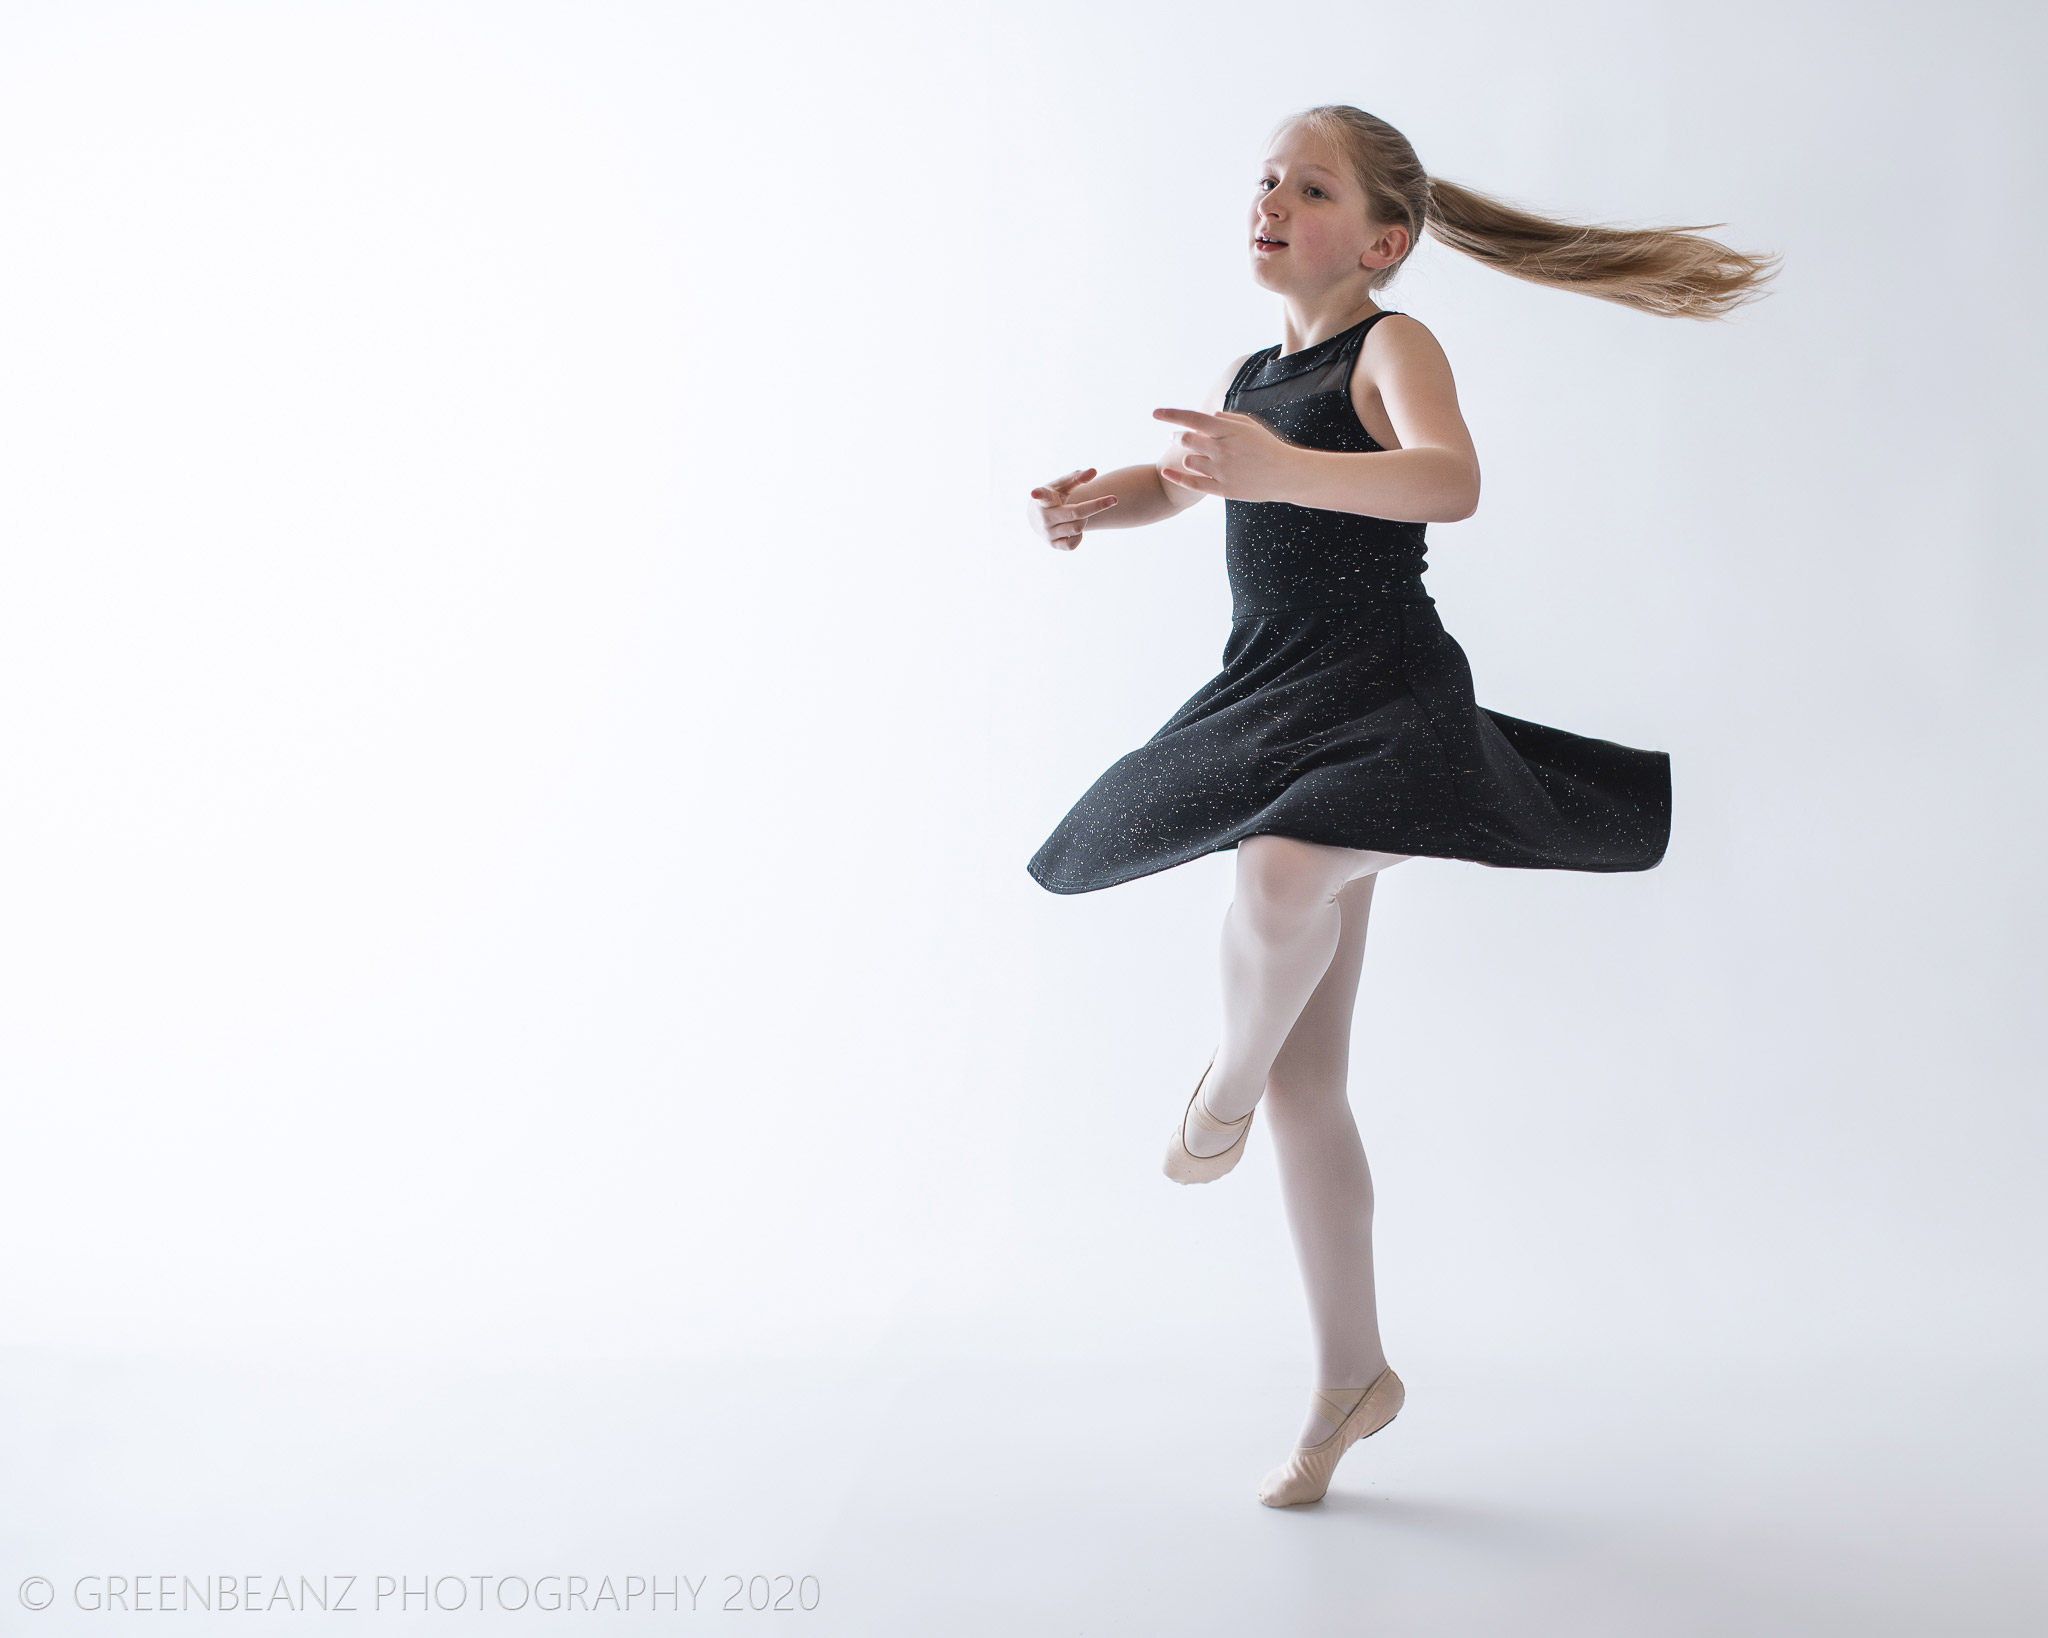 Plymouth Family Portrait photographer captures Dancer Anastasia